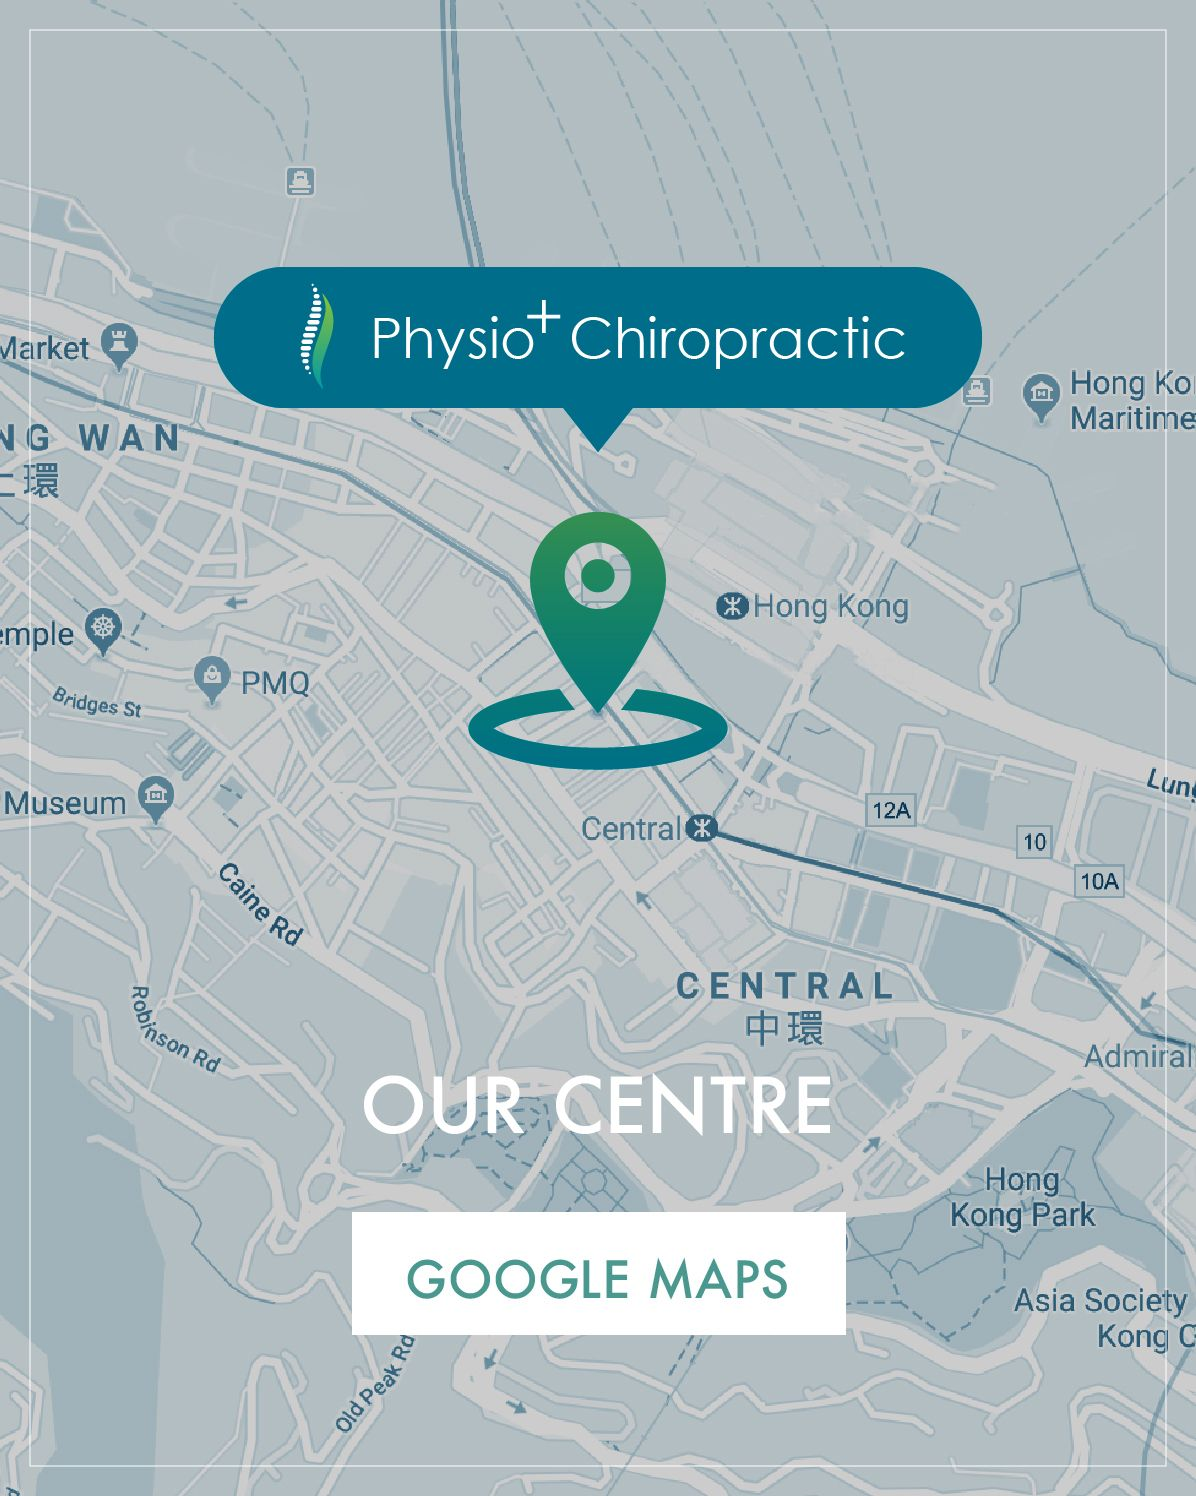 Where is Physio+